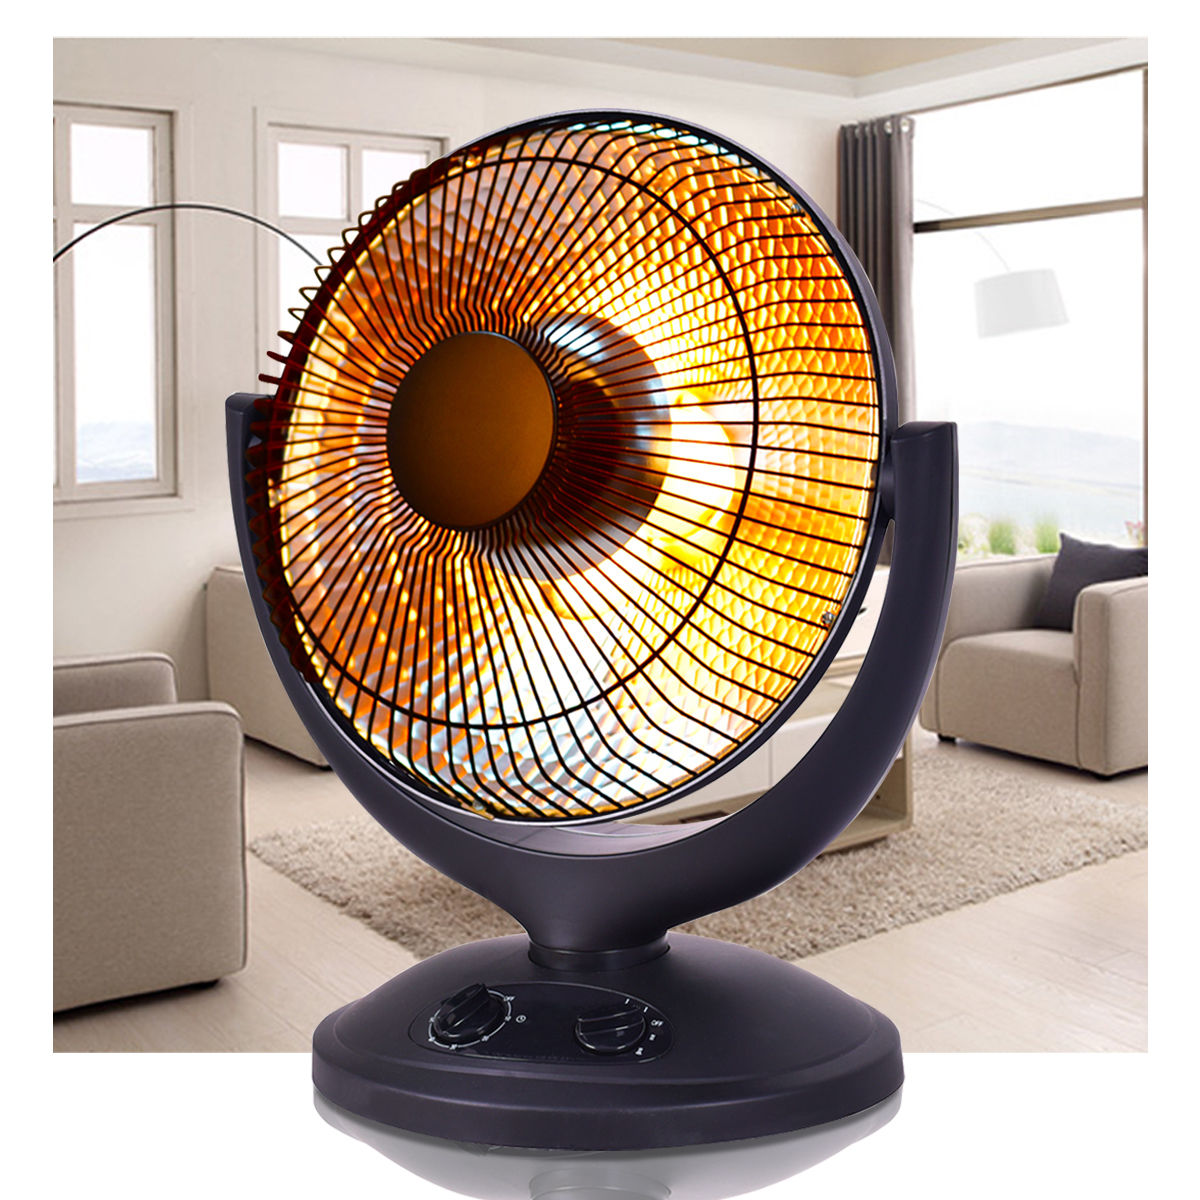 Costway Electric Parabolic Oscillating Infrared Space Heater W/Timer Home office